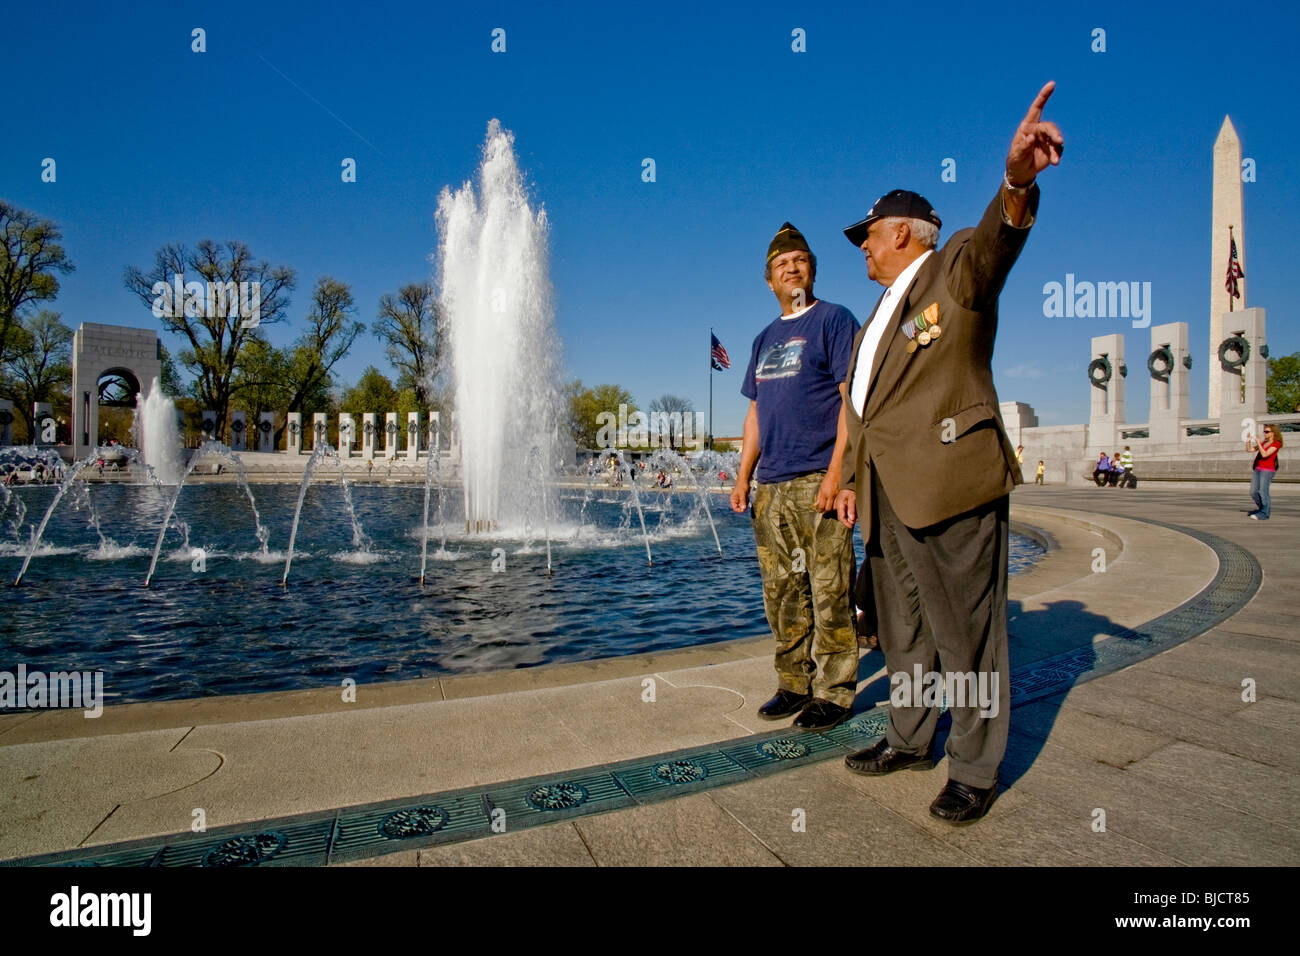 A US Navy veteran of World War II points out details of the World War II Memorial's Memorial Plaza in Washington, - Stock Image